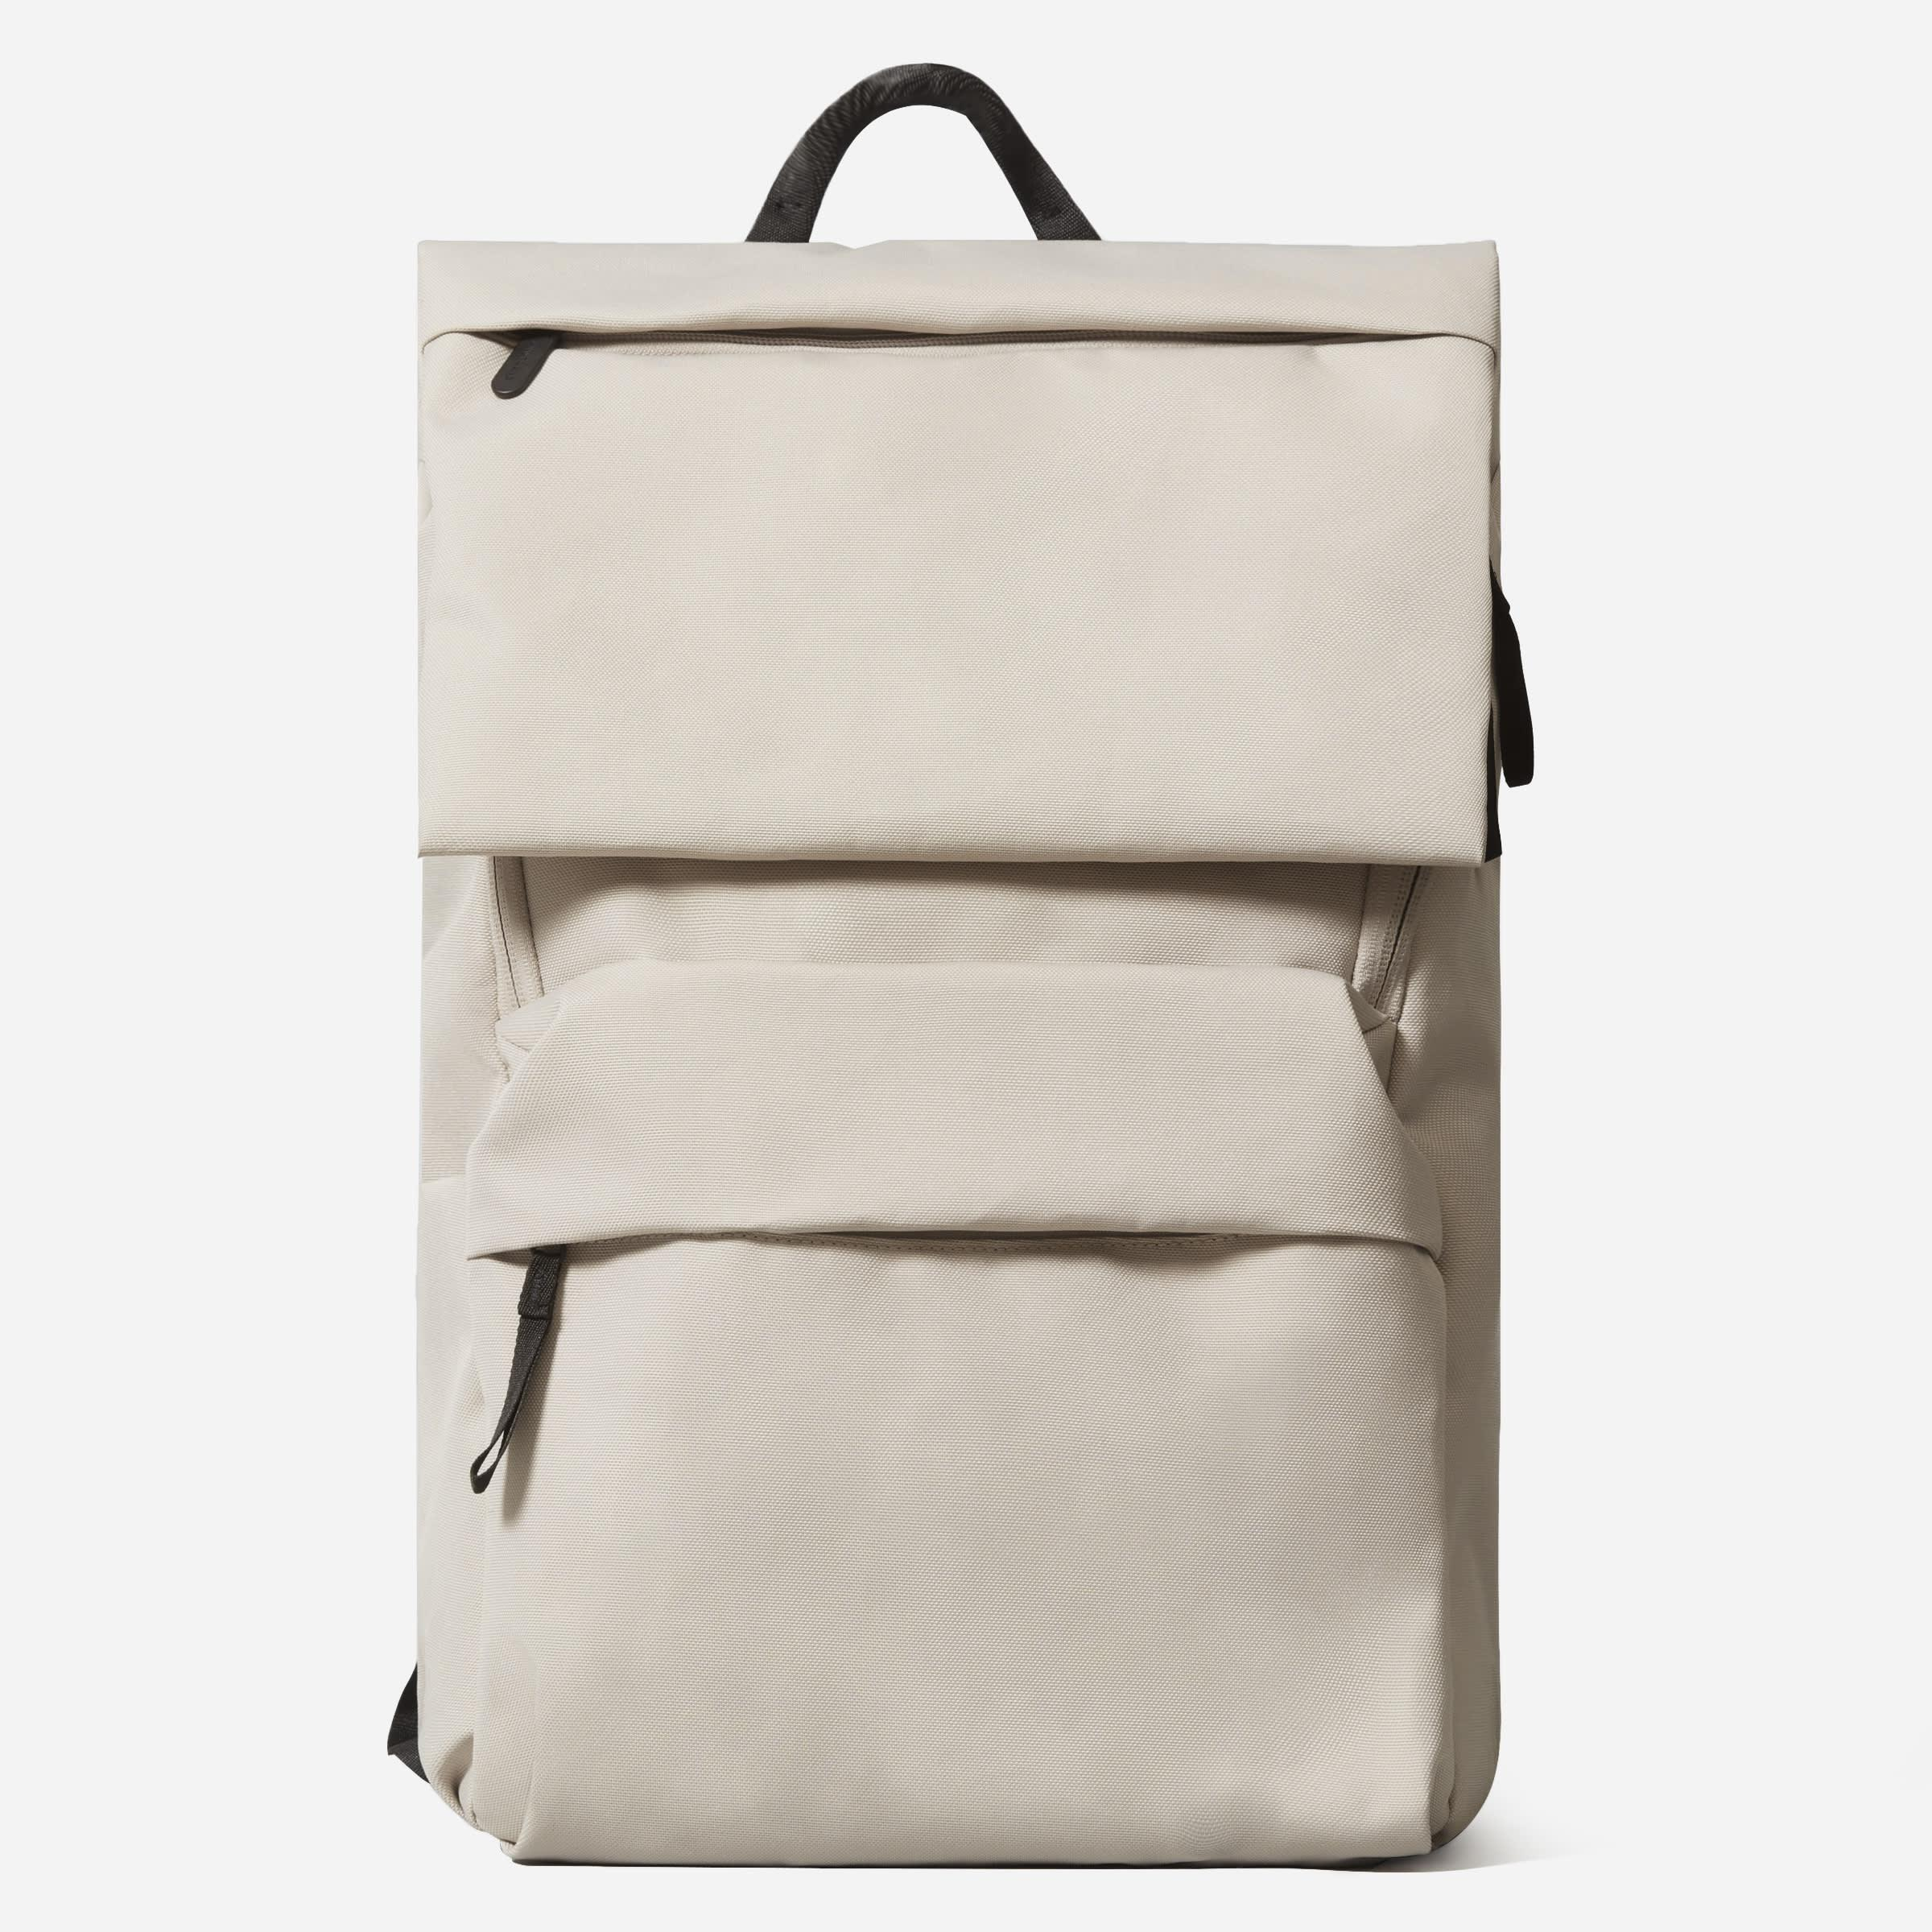 The ReNew Transit Backpack